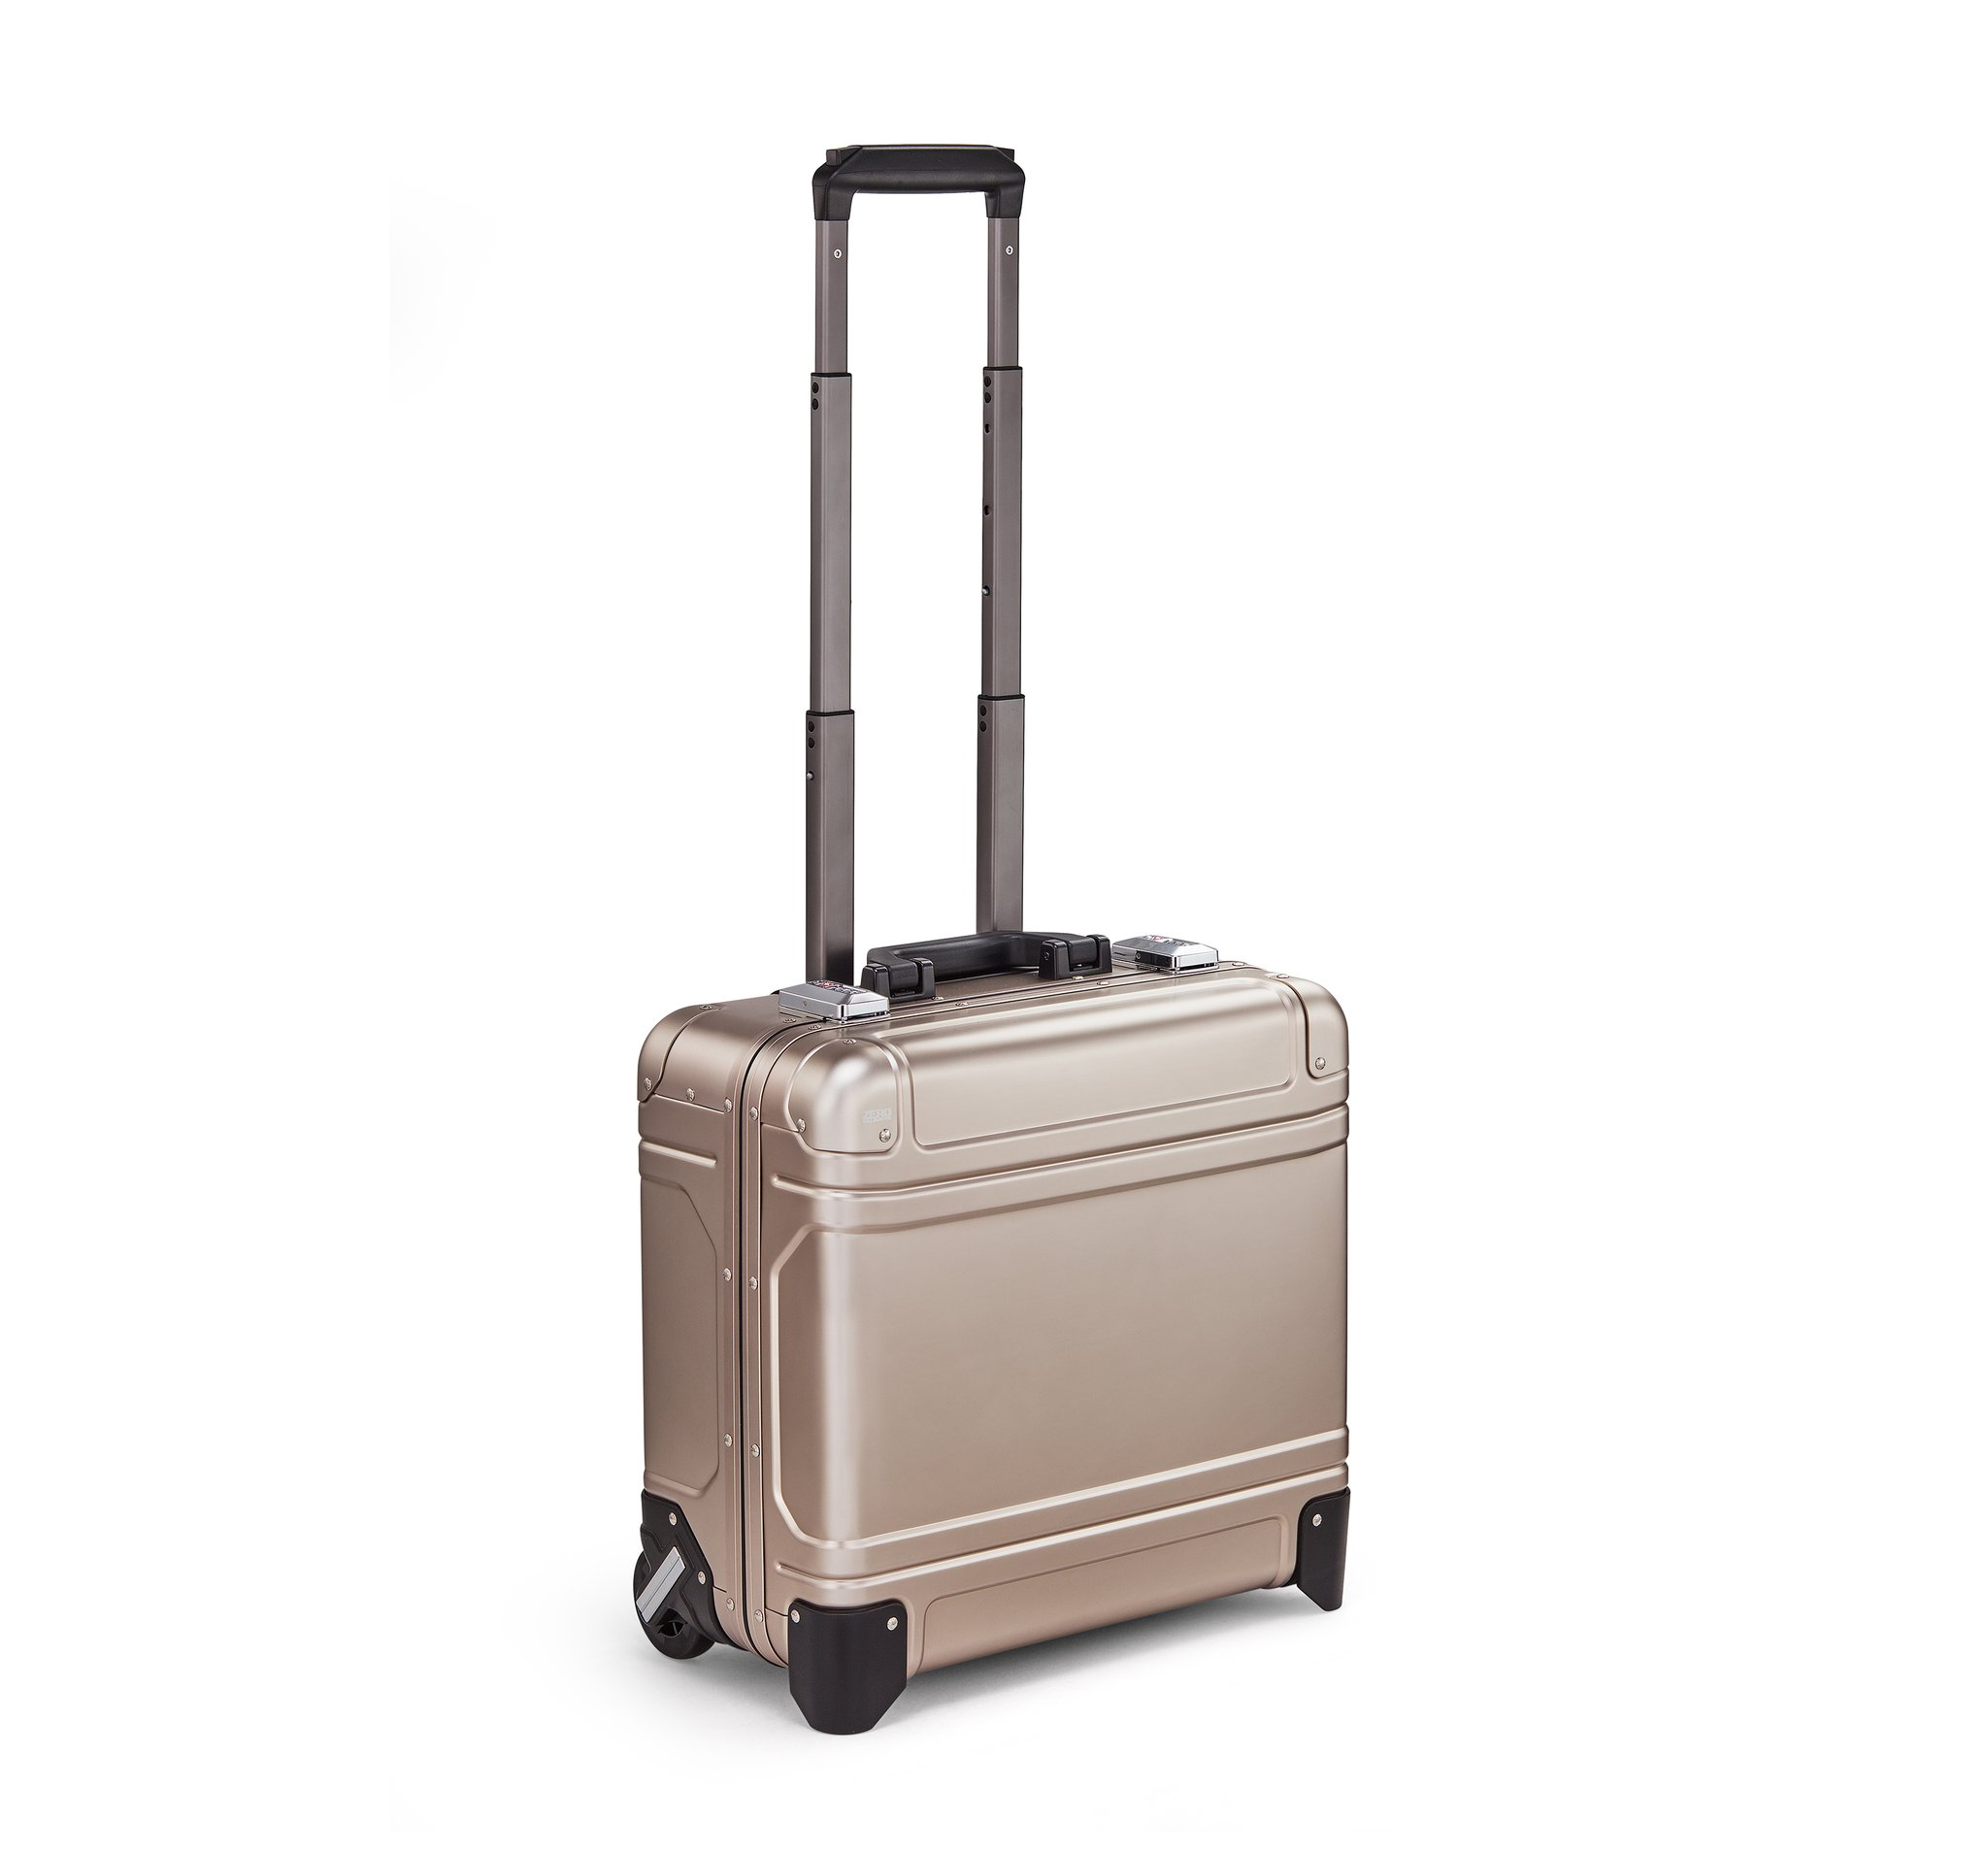 "Geo Aluminum 3.0 - 17"" Wheeled Travel Case by Zero Halliburton (Color: Bronze)"